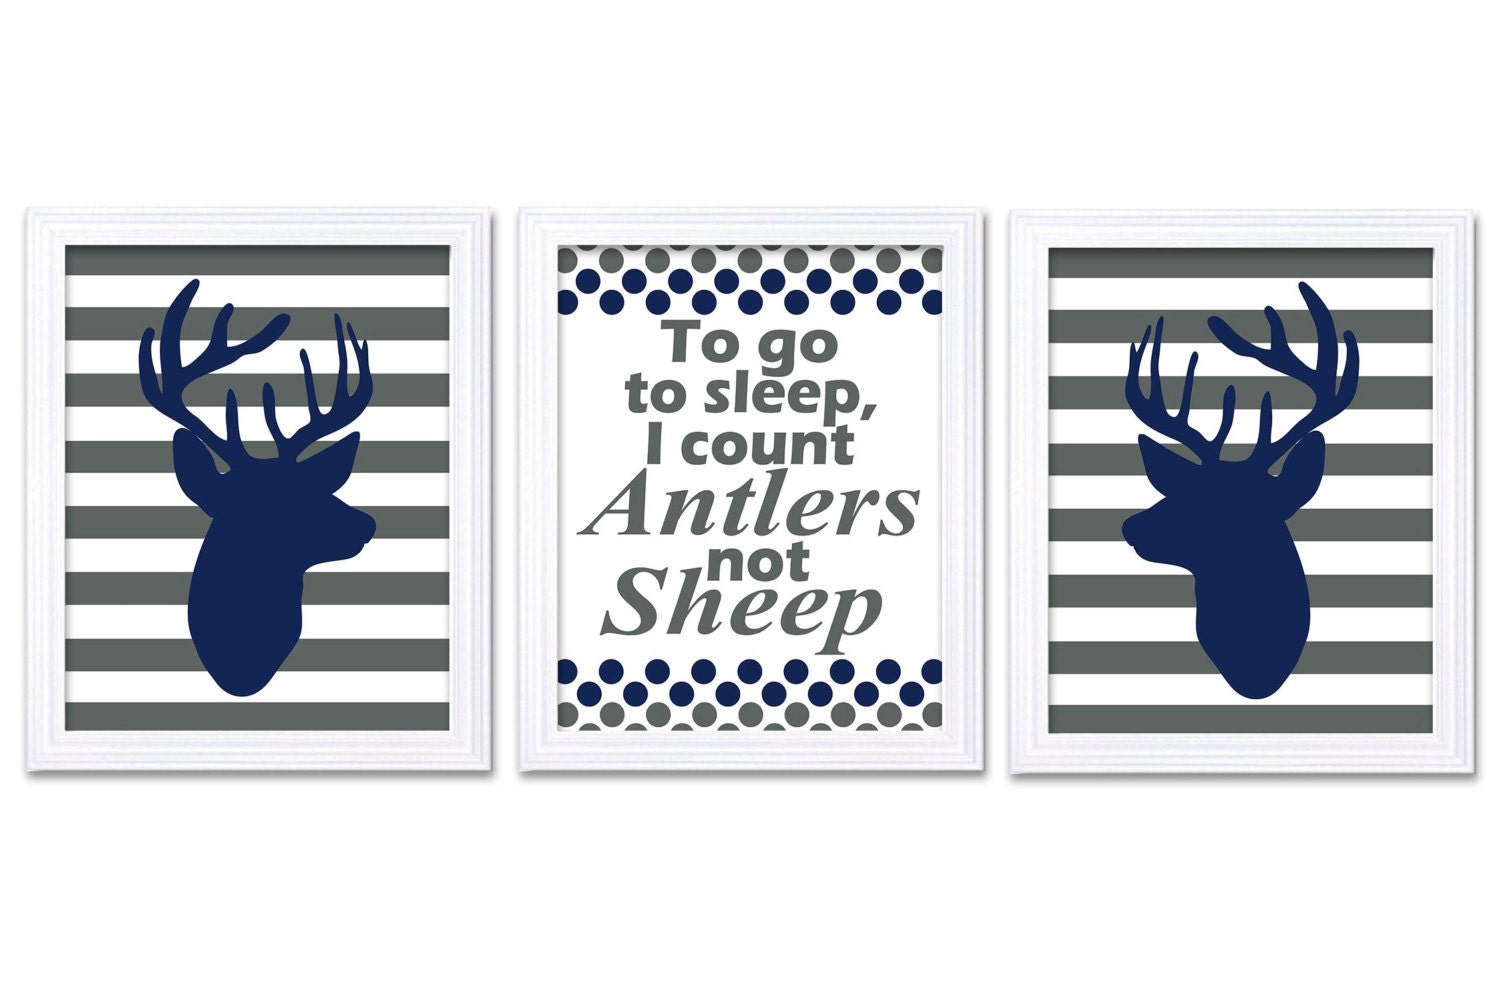 Navy Blue Grey Deer Nursery Art Deer Head Prints Set of 3 To Go To Sleep Count Antlers Stripes Baby